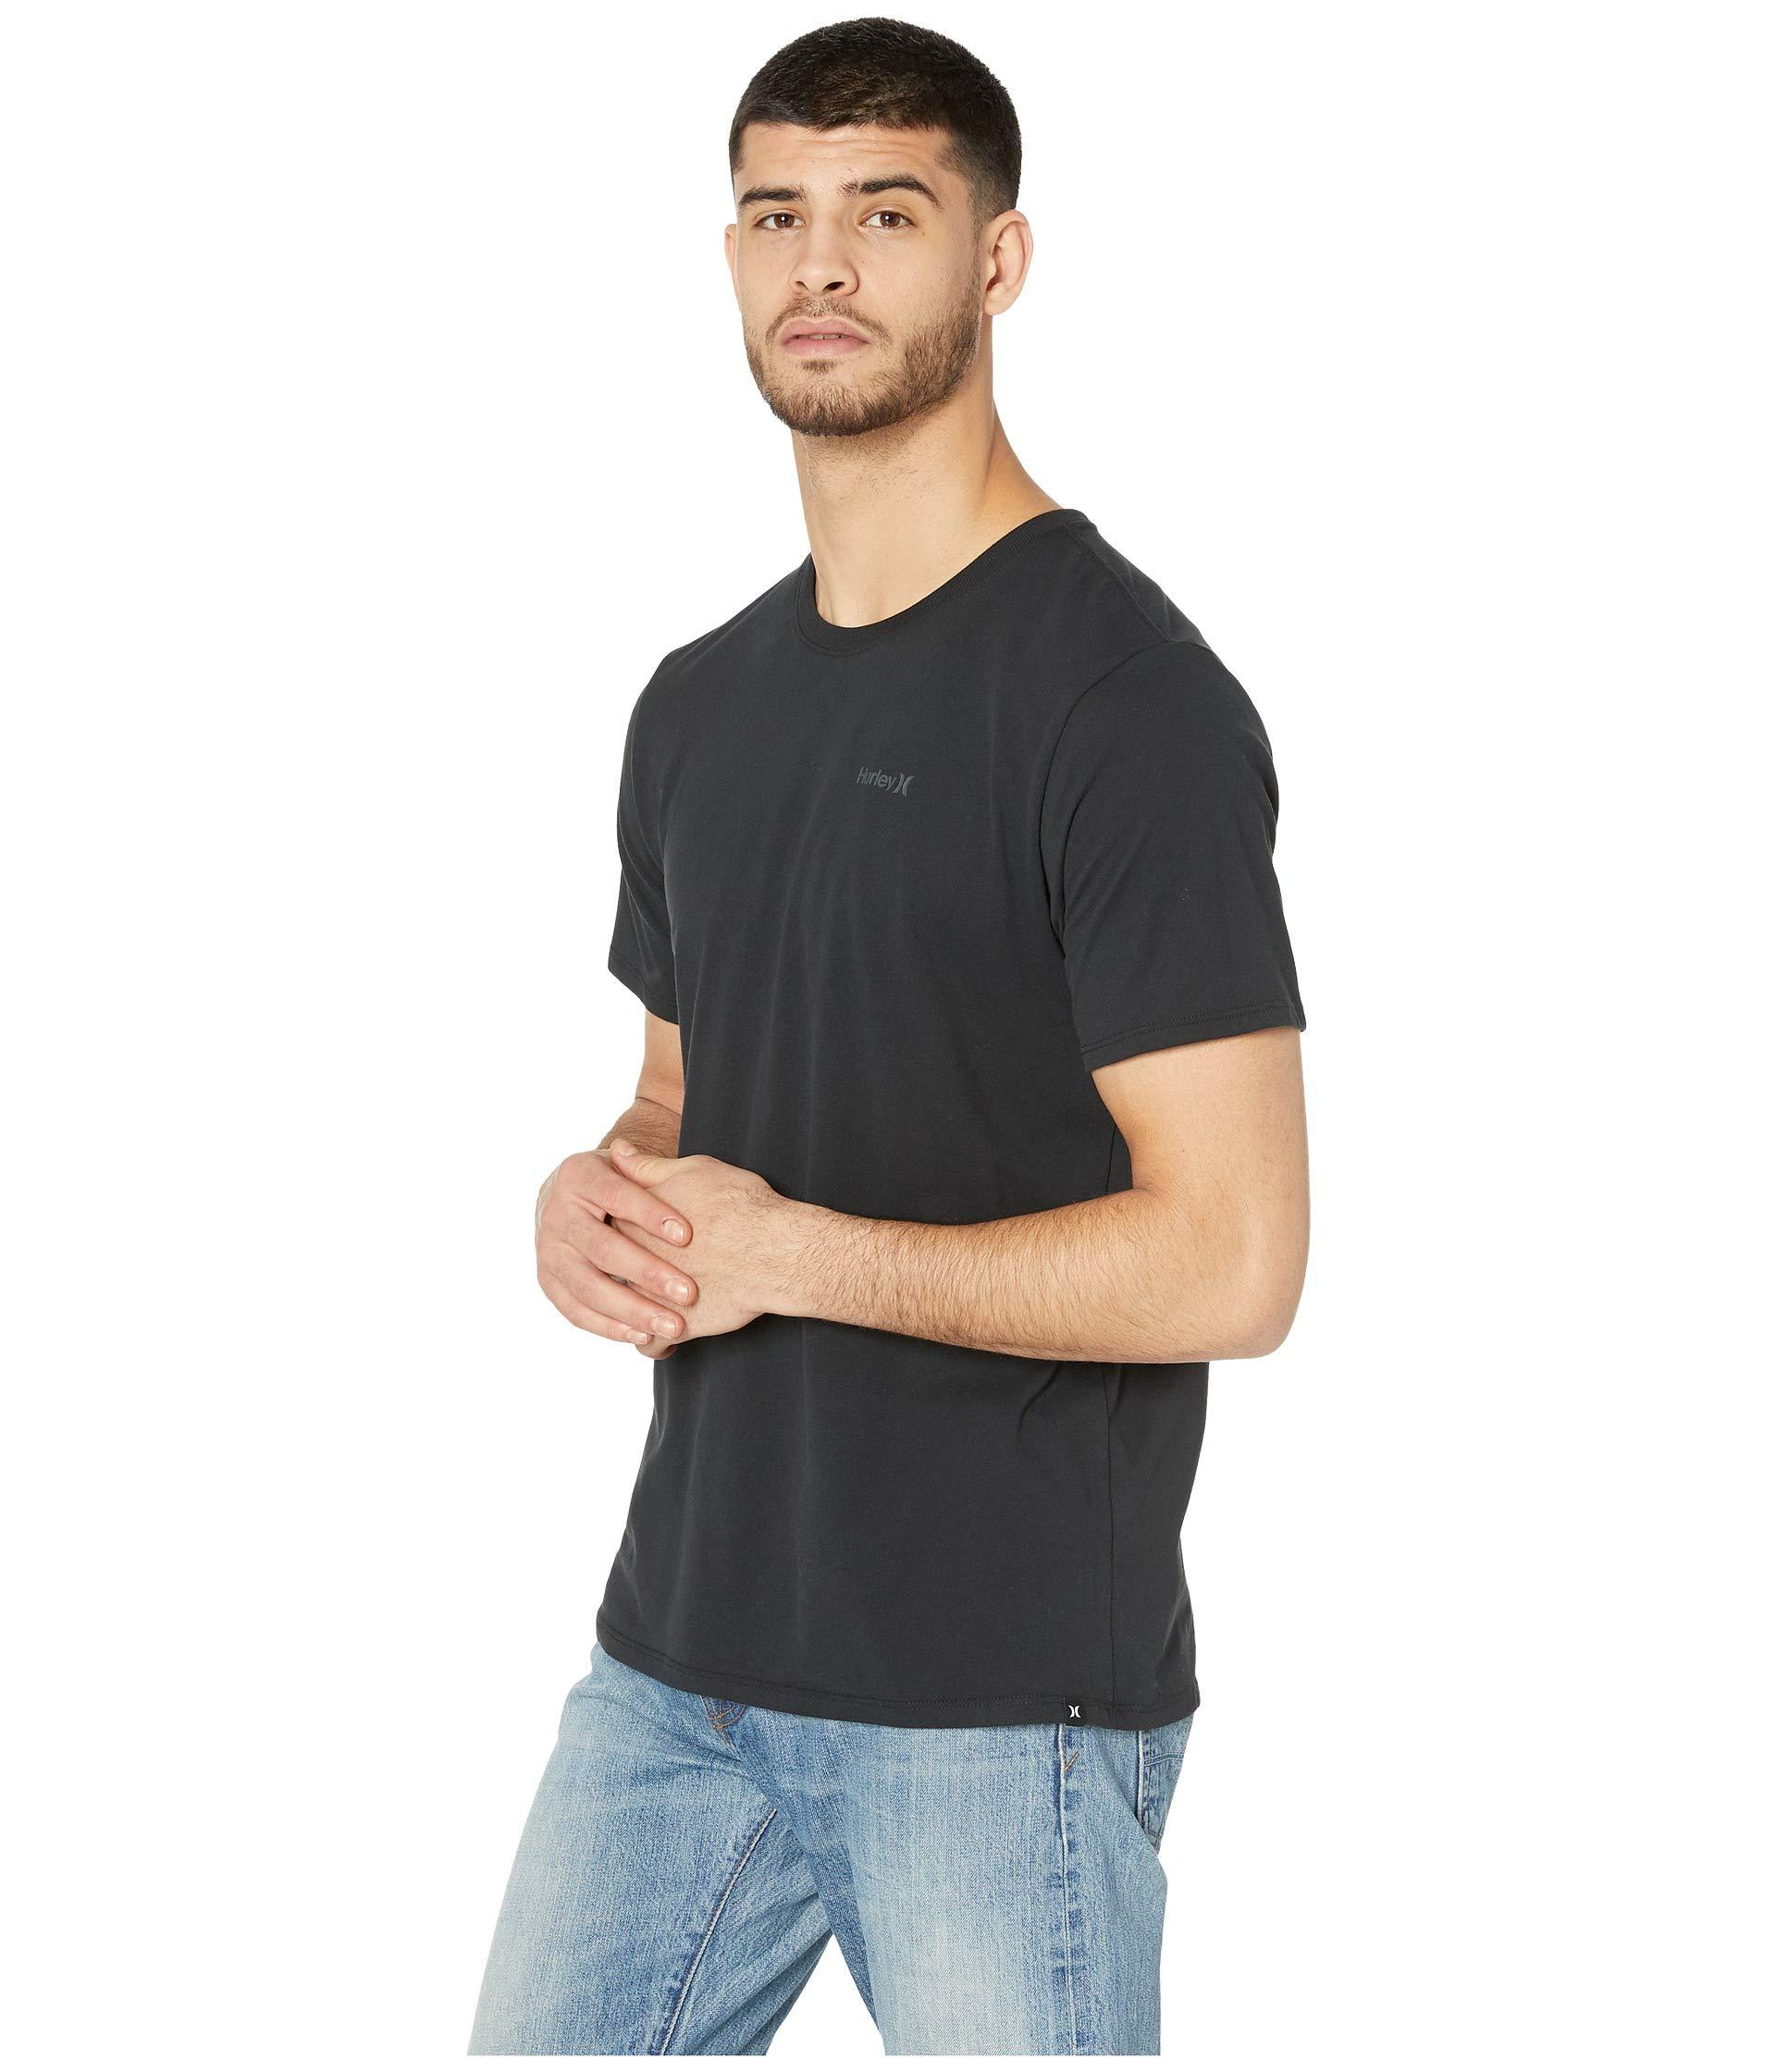 950cb122 Lyst - Hurley Dri-fit One And Only 2.0 T-shirt in Black for Men - Save 20%